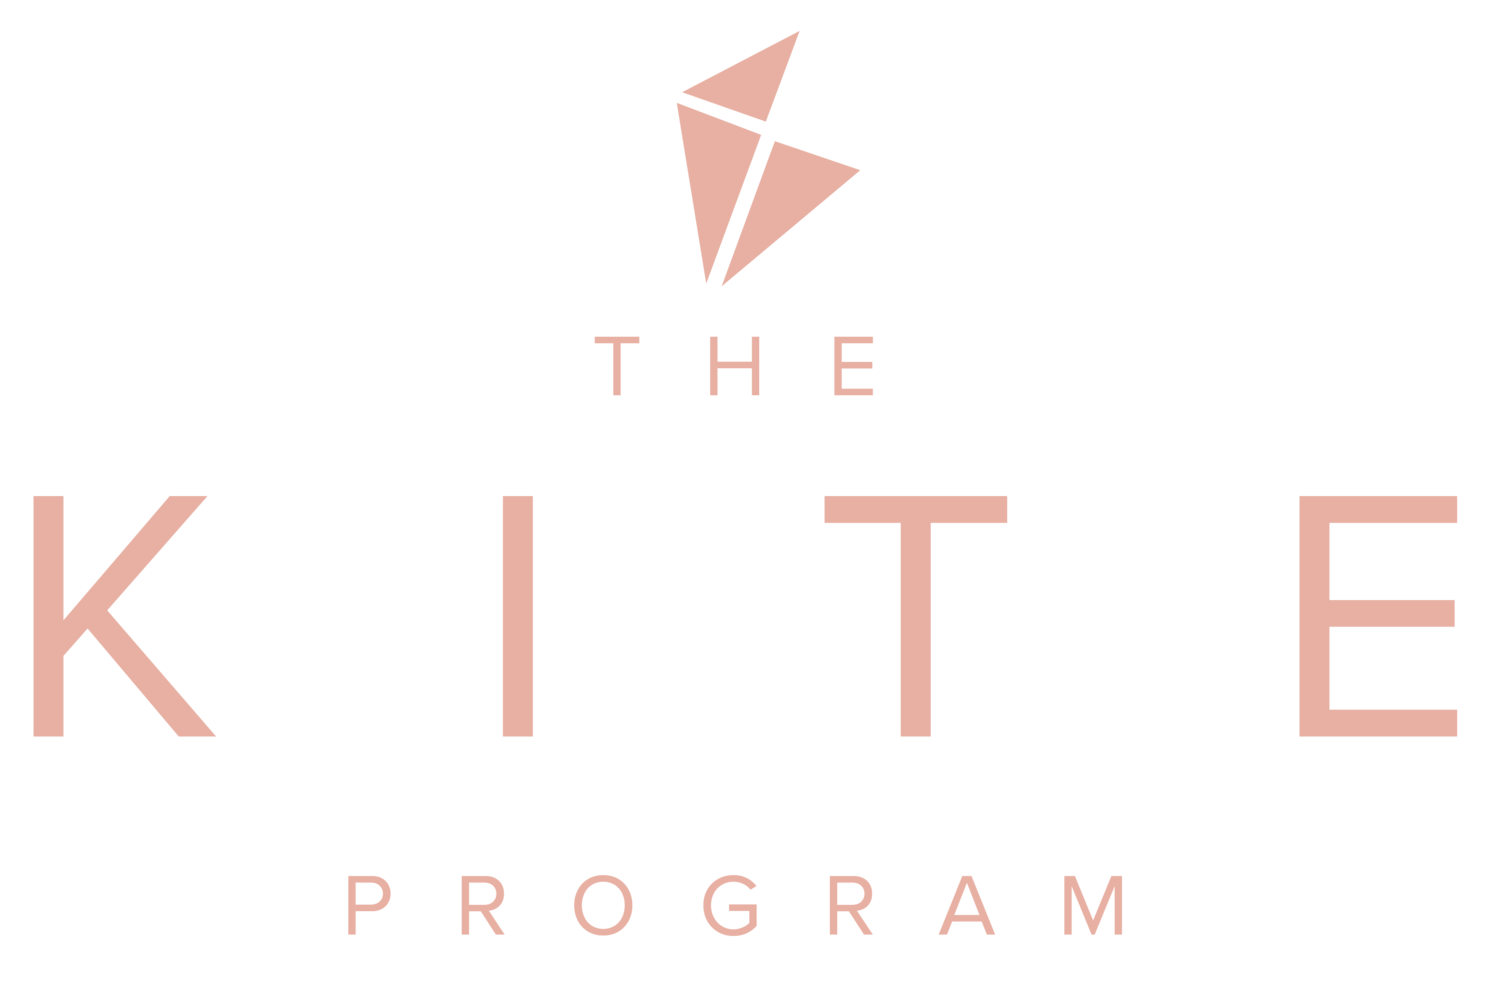 The KITE program